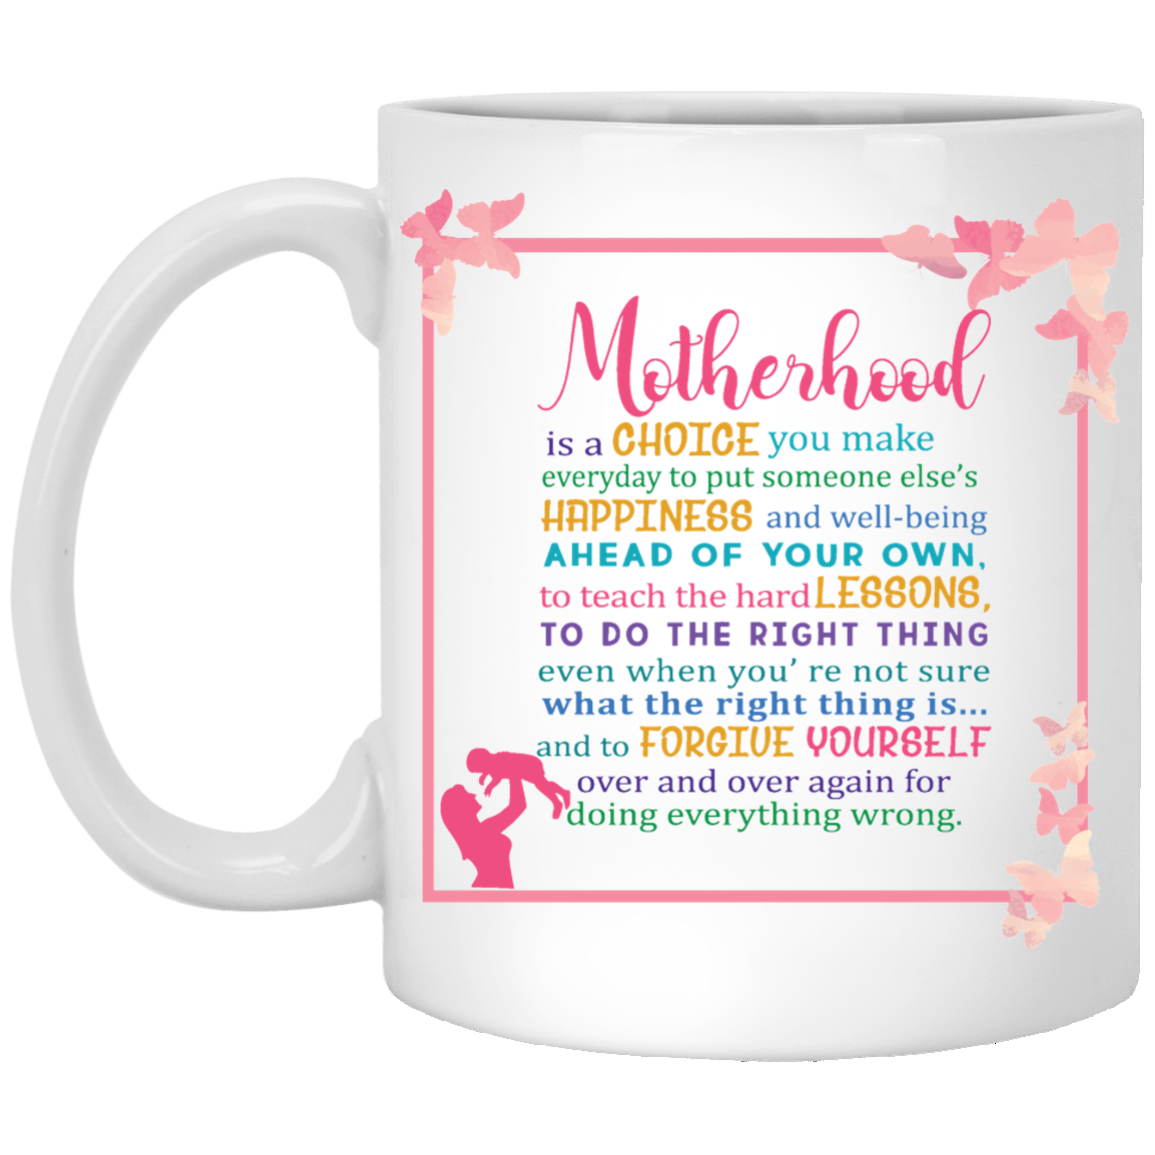 motherhood is a choice you make every day to put up someone